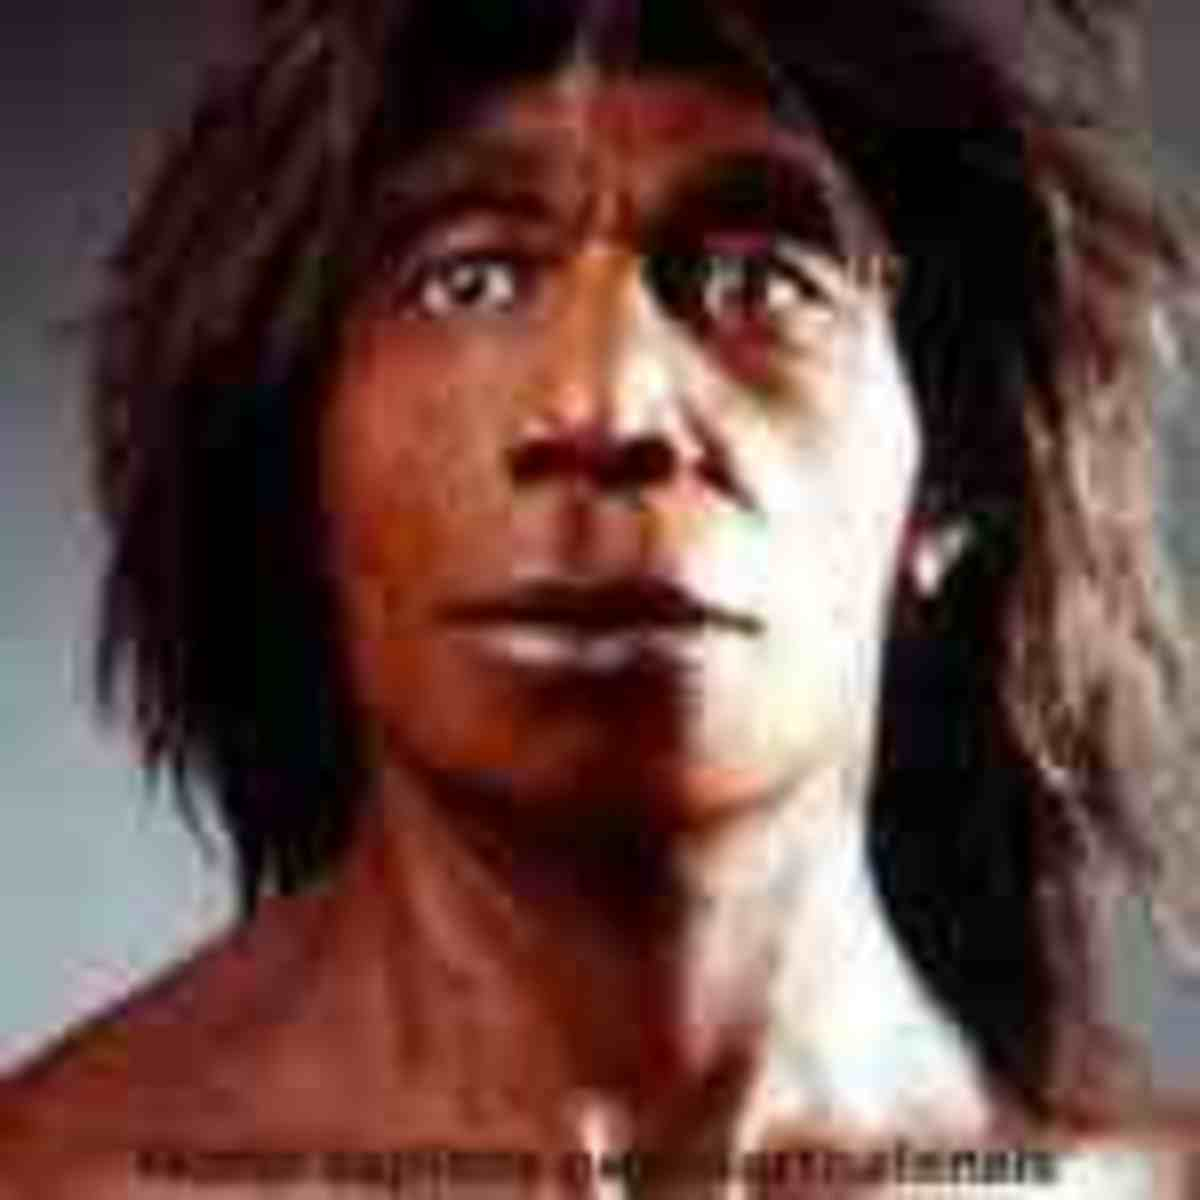 Denisovans - A new breed of Man who Interbred with Humans An Exciting New Discovery for Archaeology